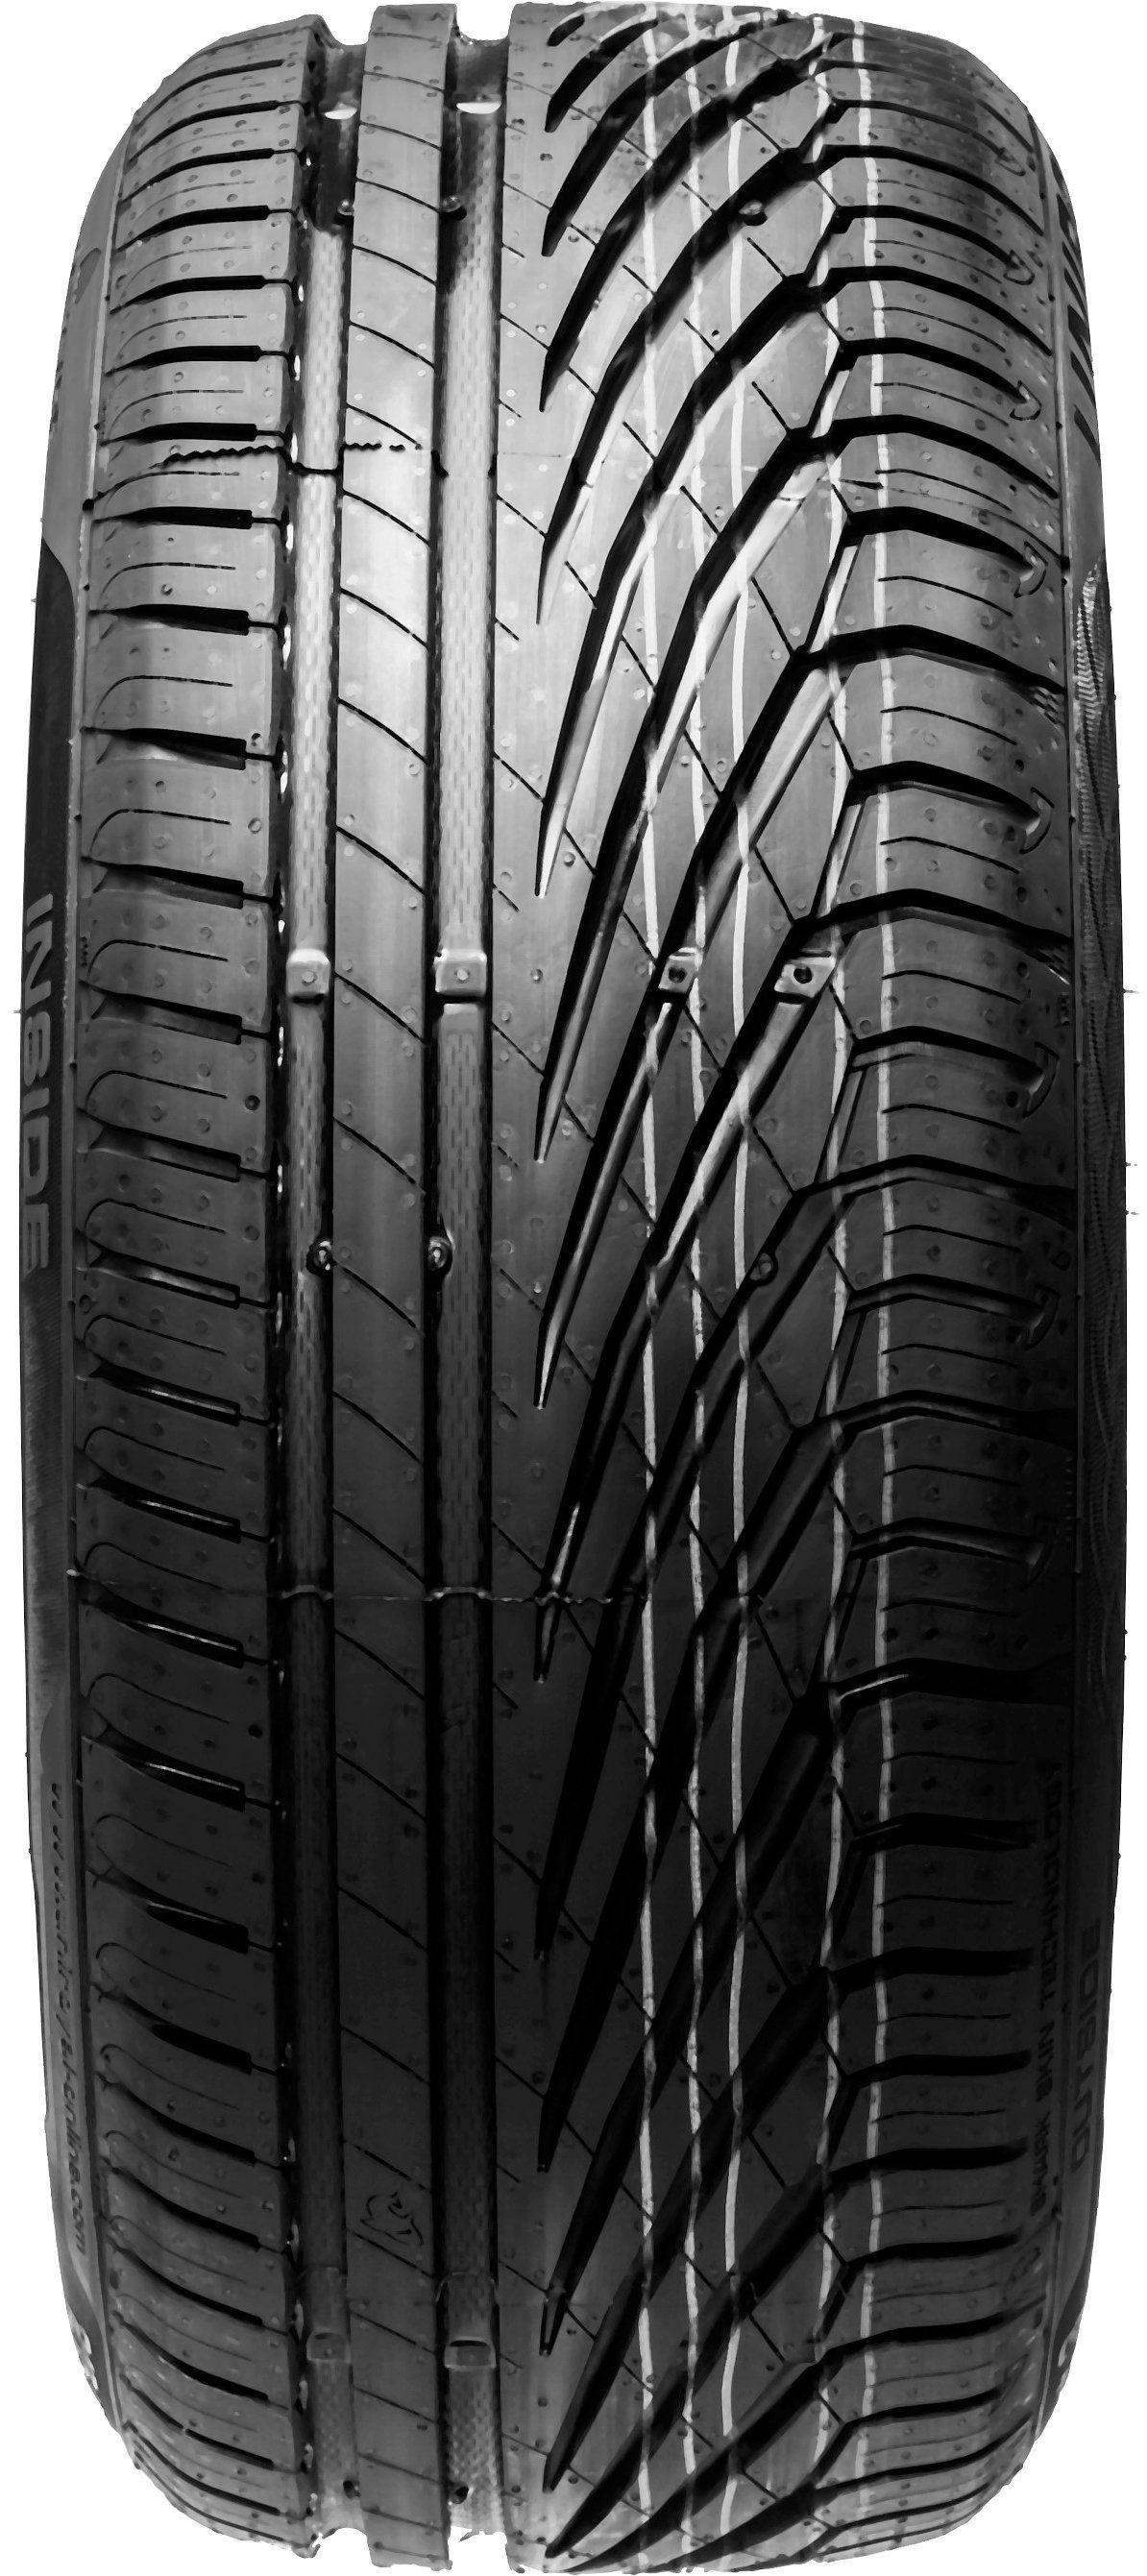 UNIROYAL Sommerreifen »RainSport 3«, 225/50 R17 94V